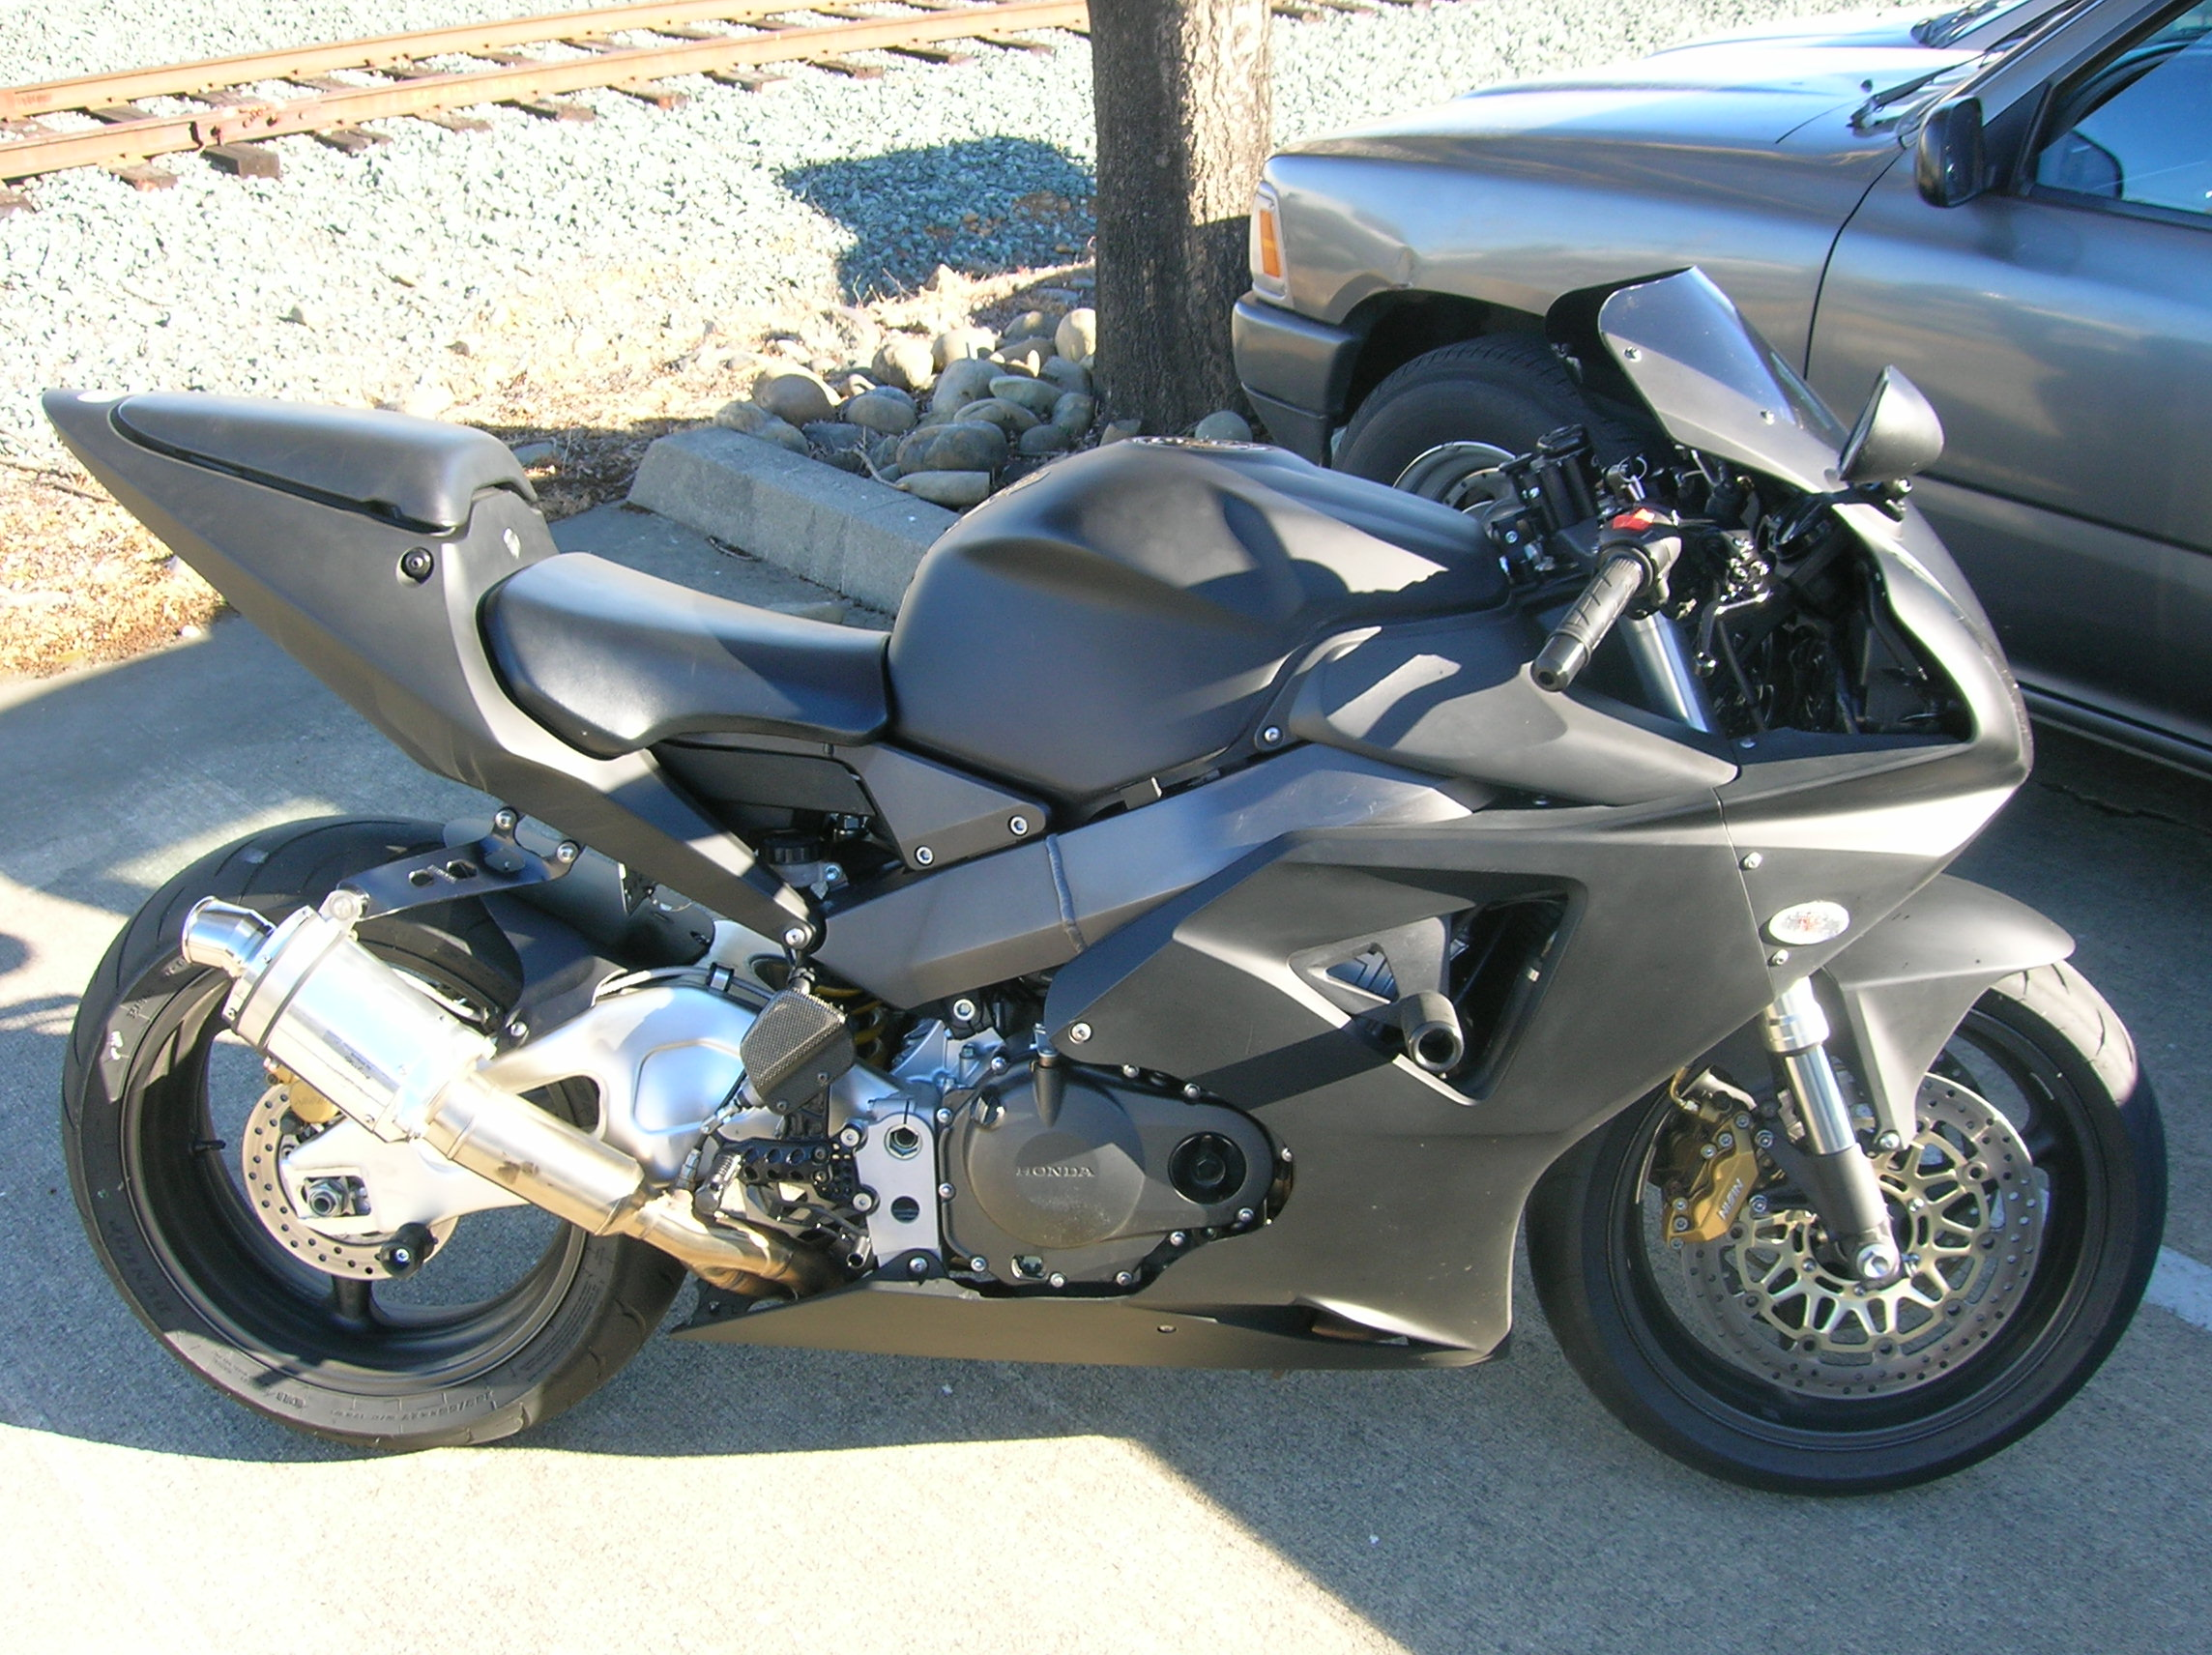 Click image for larger version  Name:bikes 009.jpg Views:23 Size:784.0 KB ID:34411